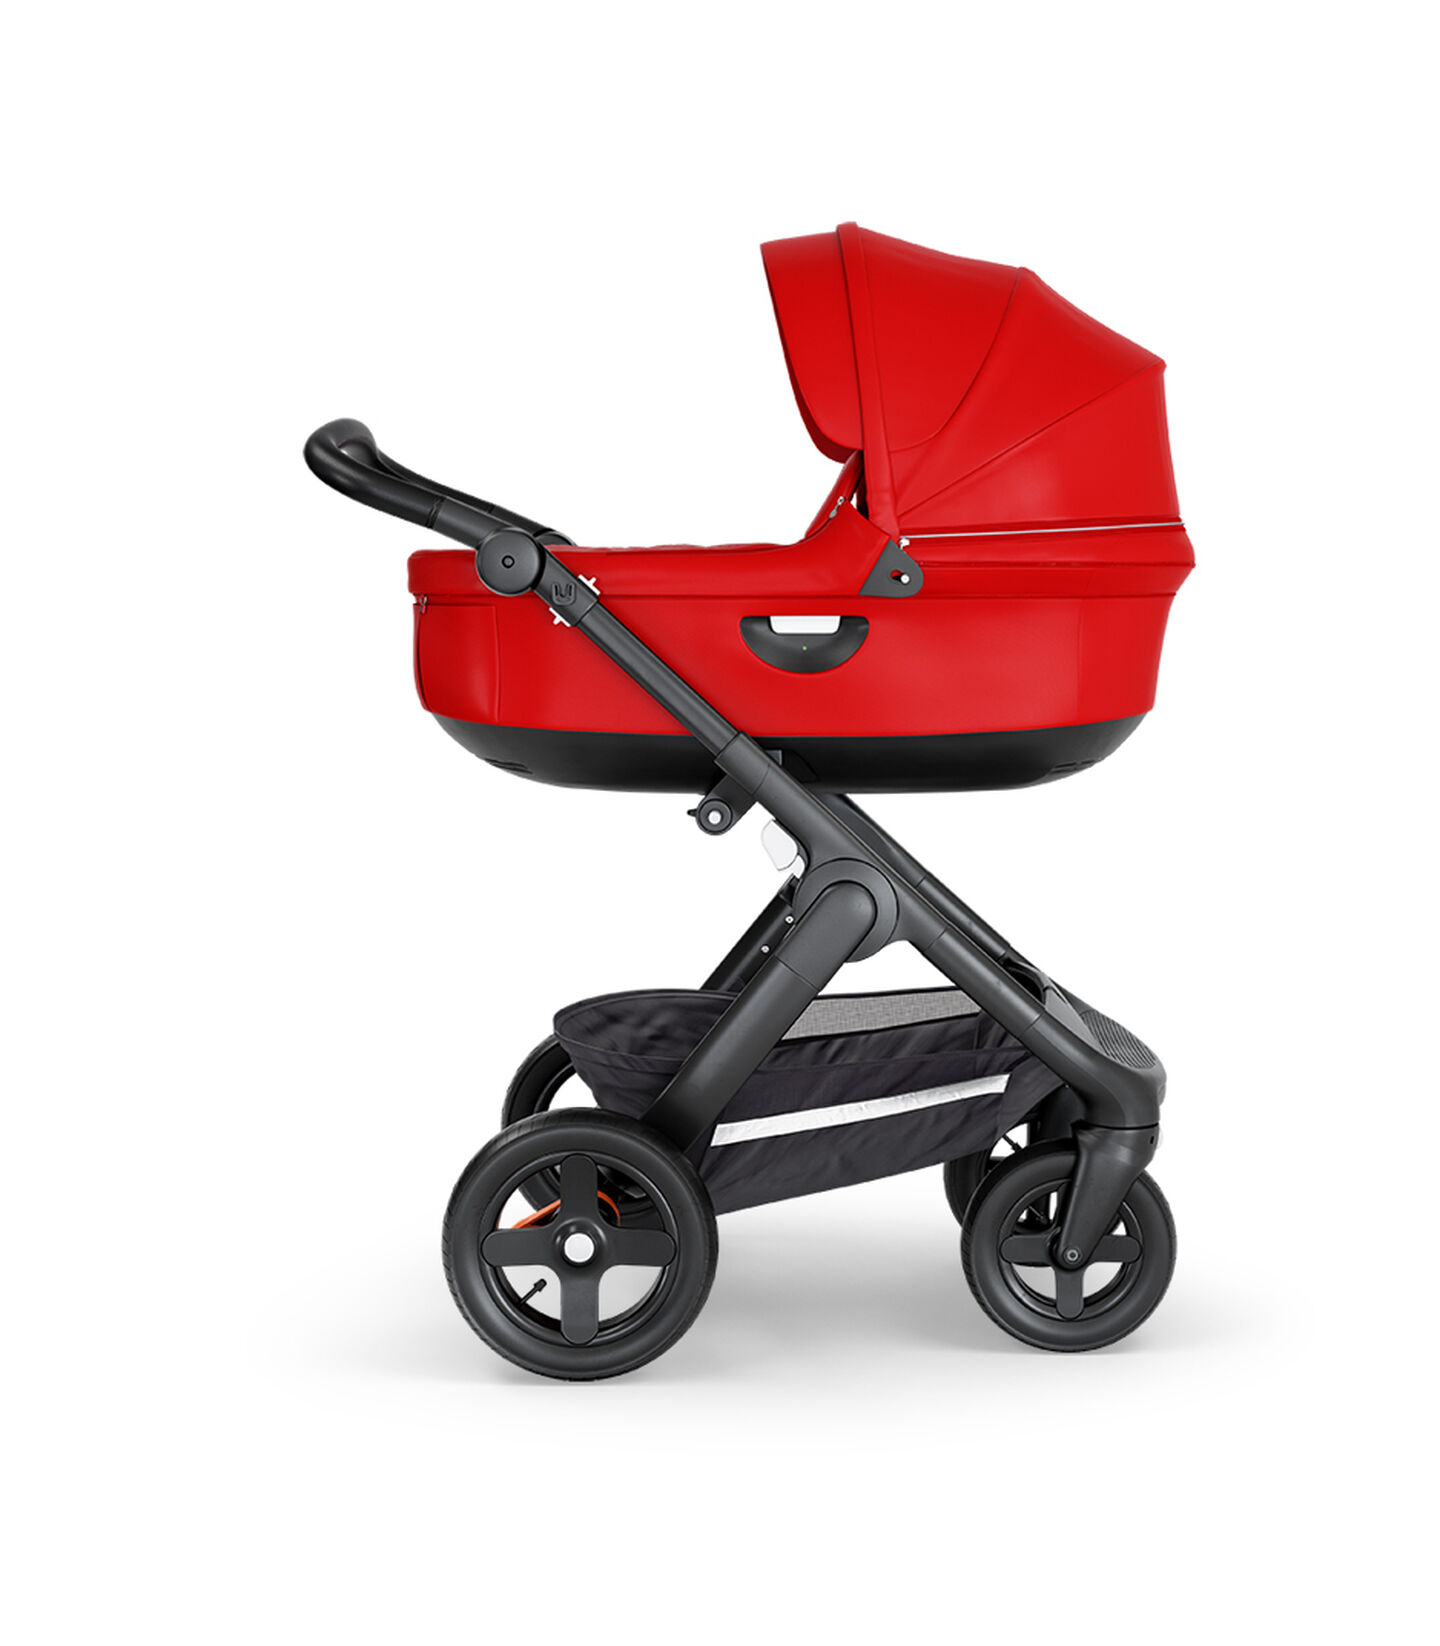 Stokke® Trailz™ with Black Chassis, Black Leatherette and Terrain Wheels. Stokke® Stroller Carry Cot, Red.